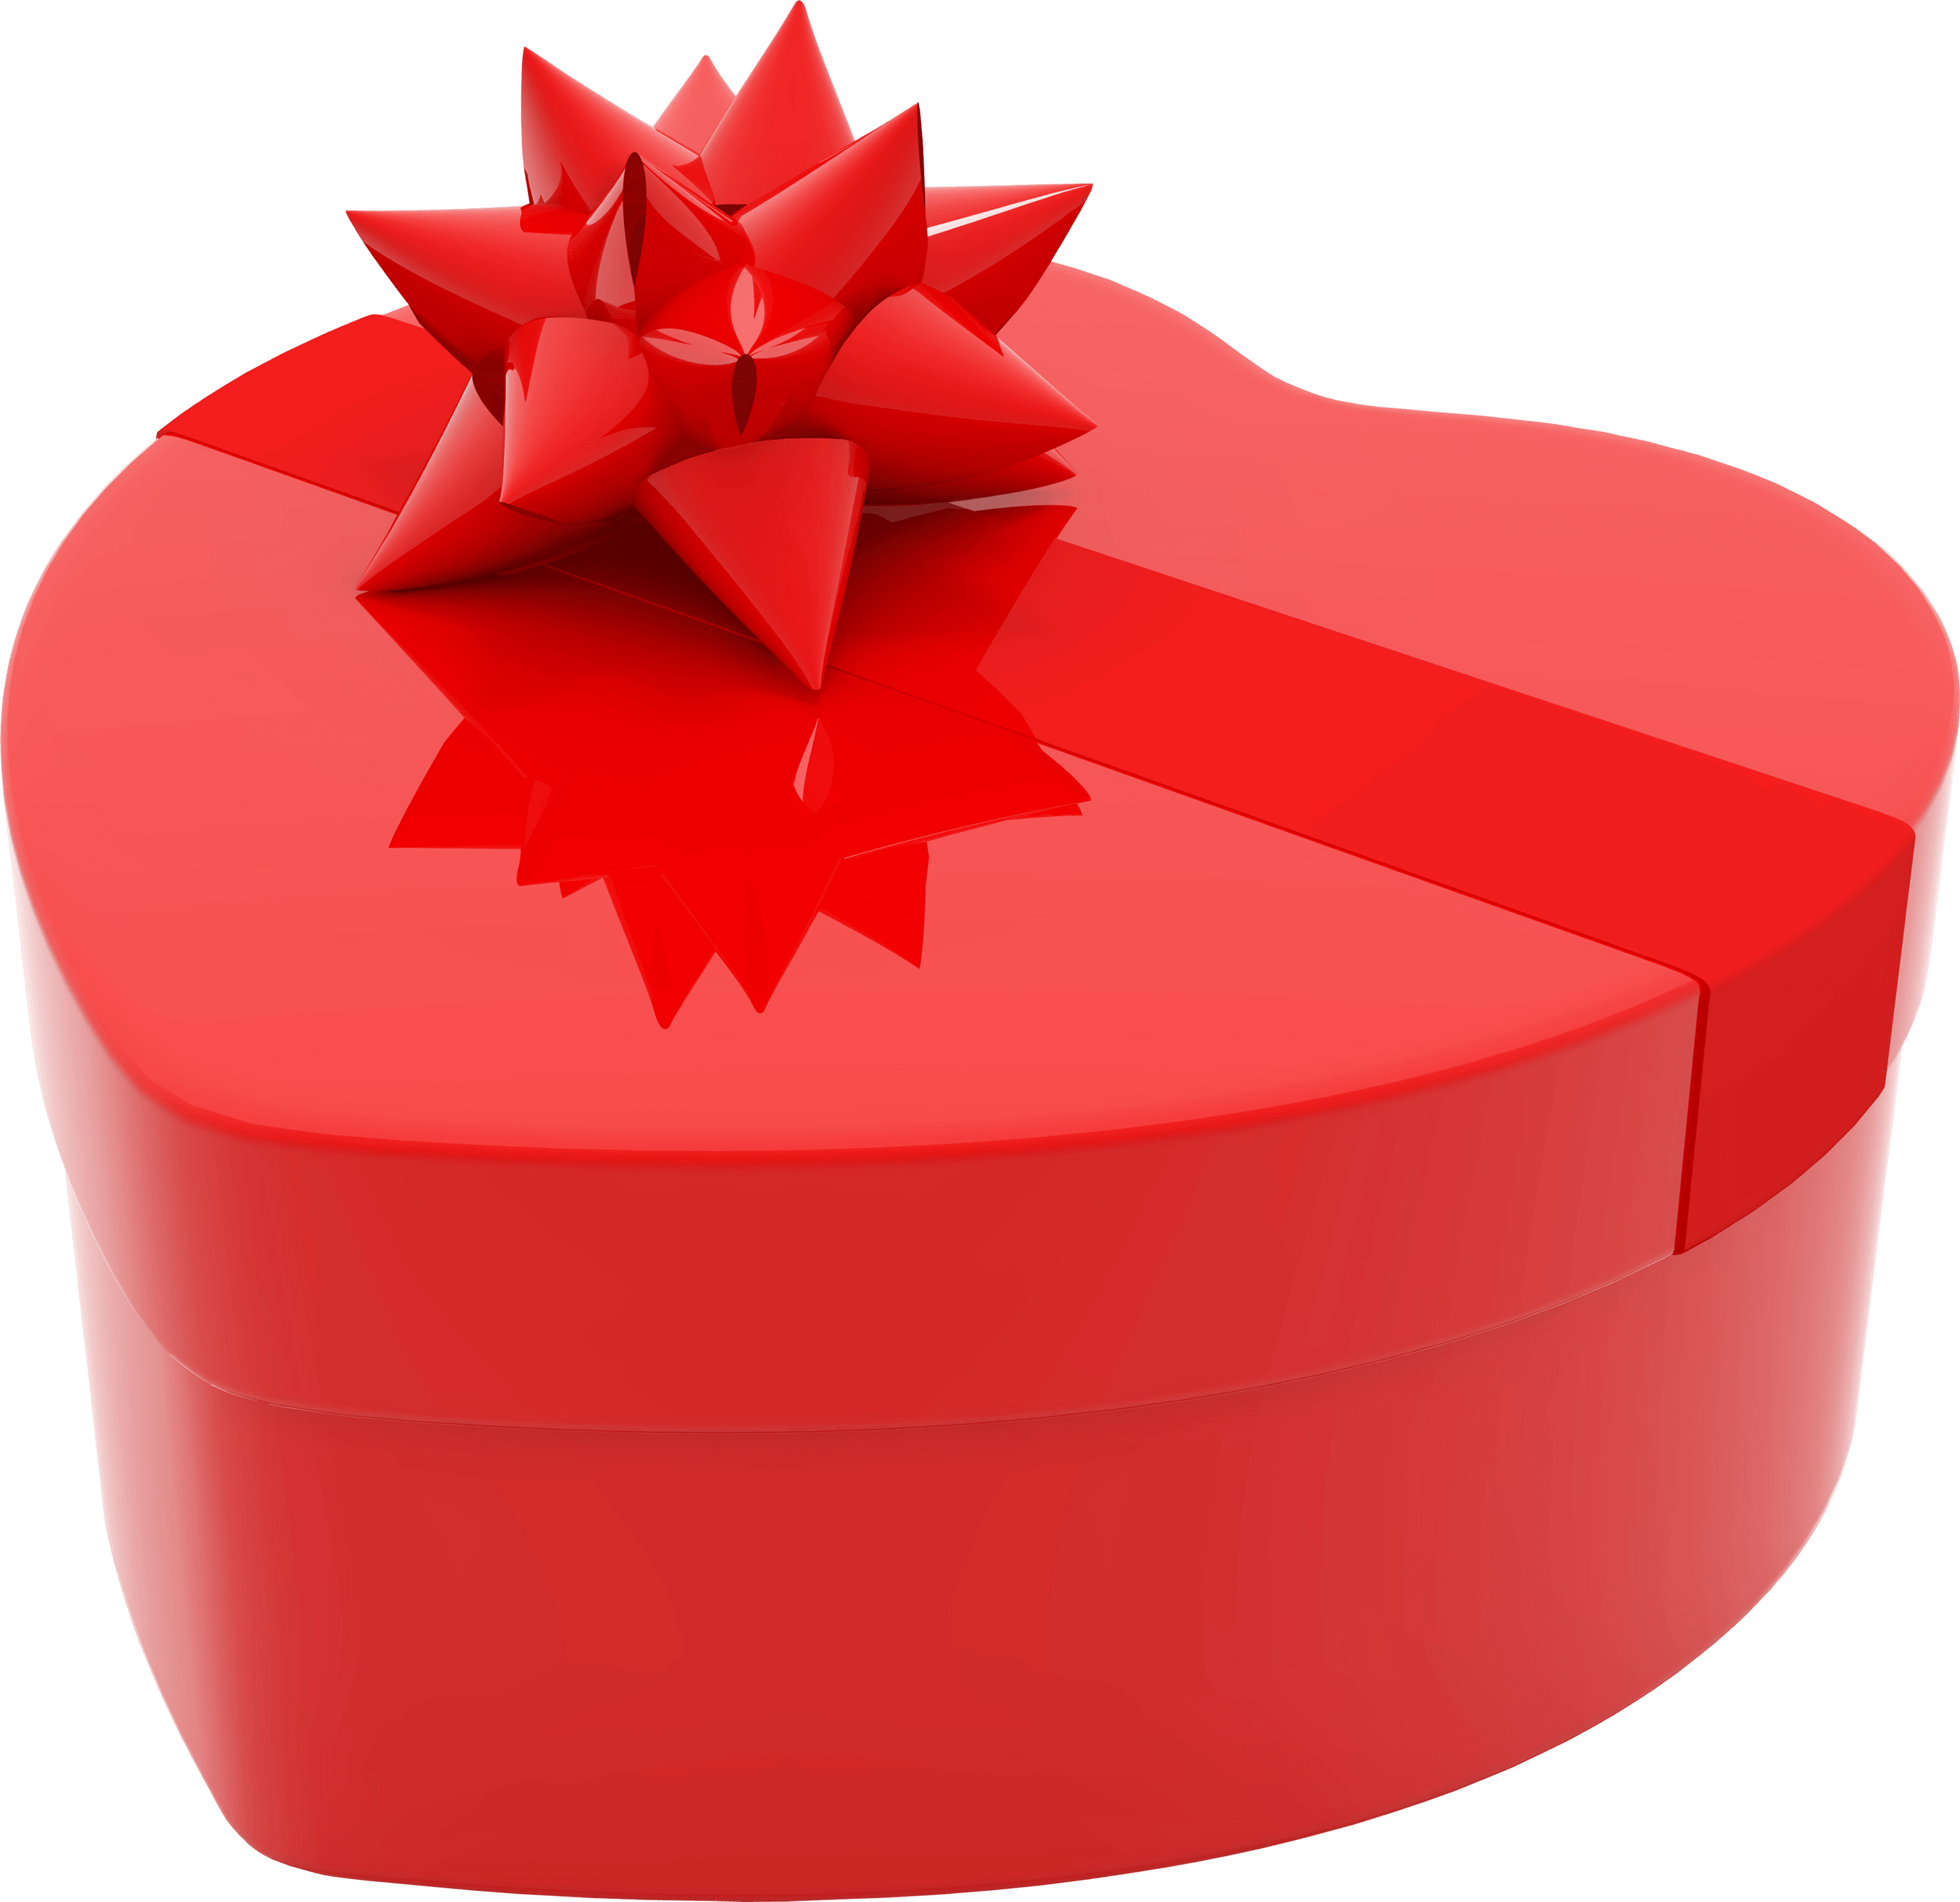 Heart red transparent png. Gift clipart love gift